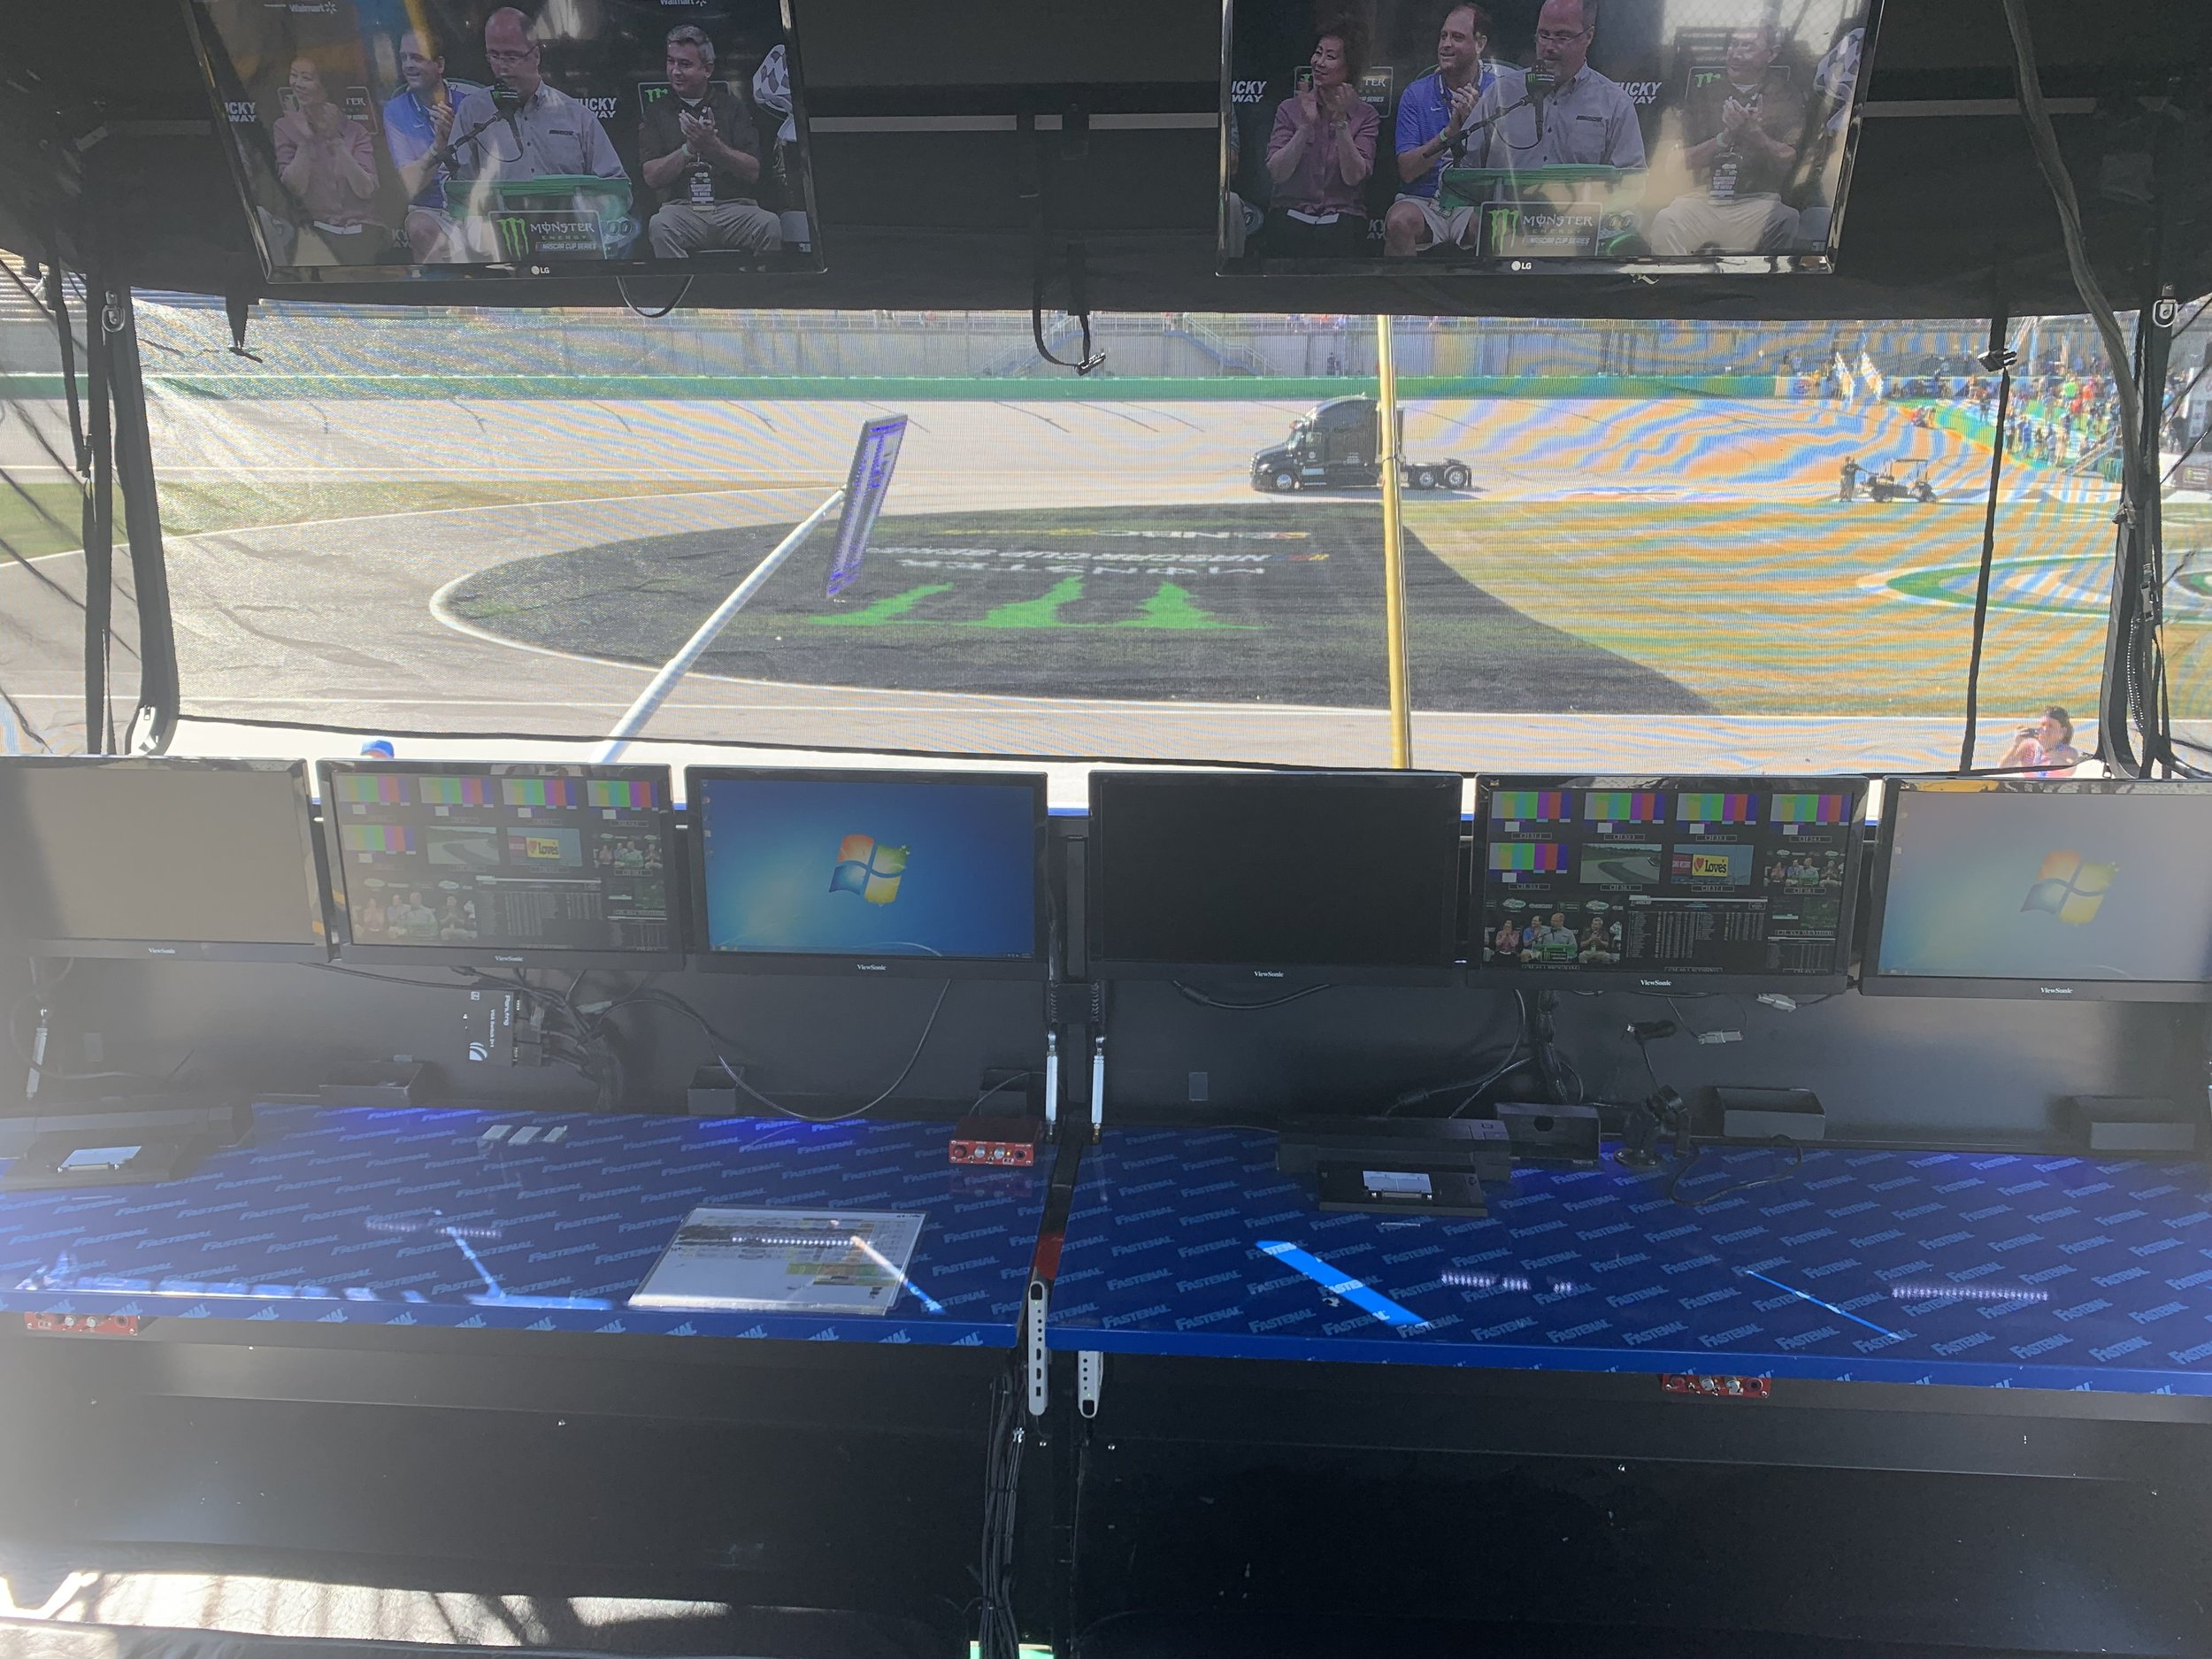 Inside of the Pit Stall Mission Control